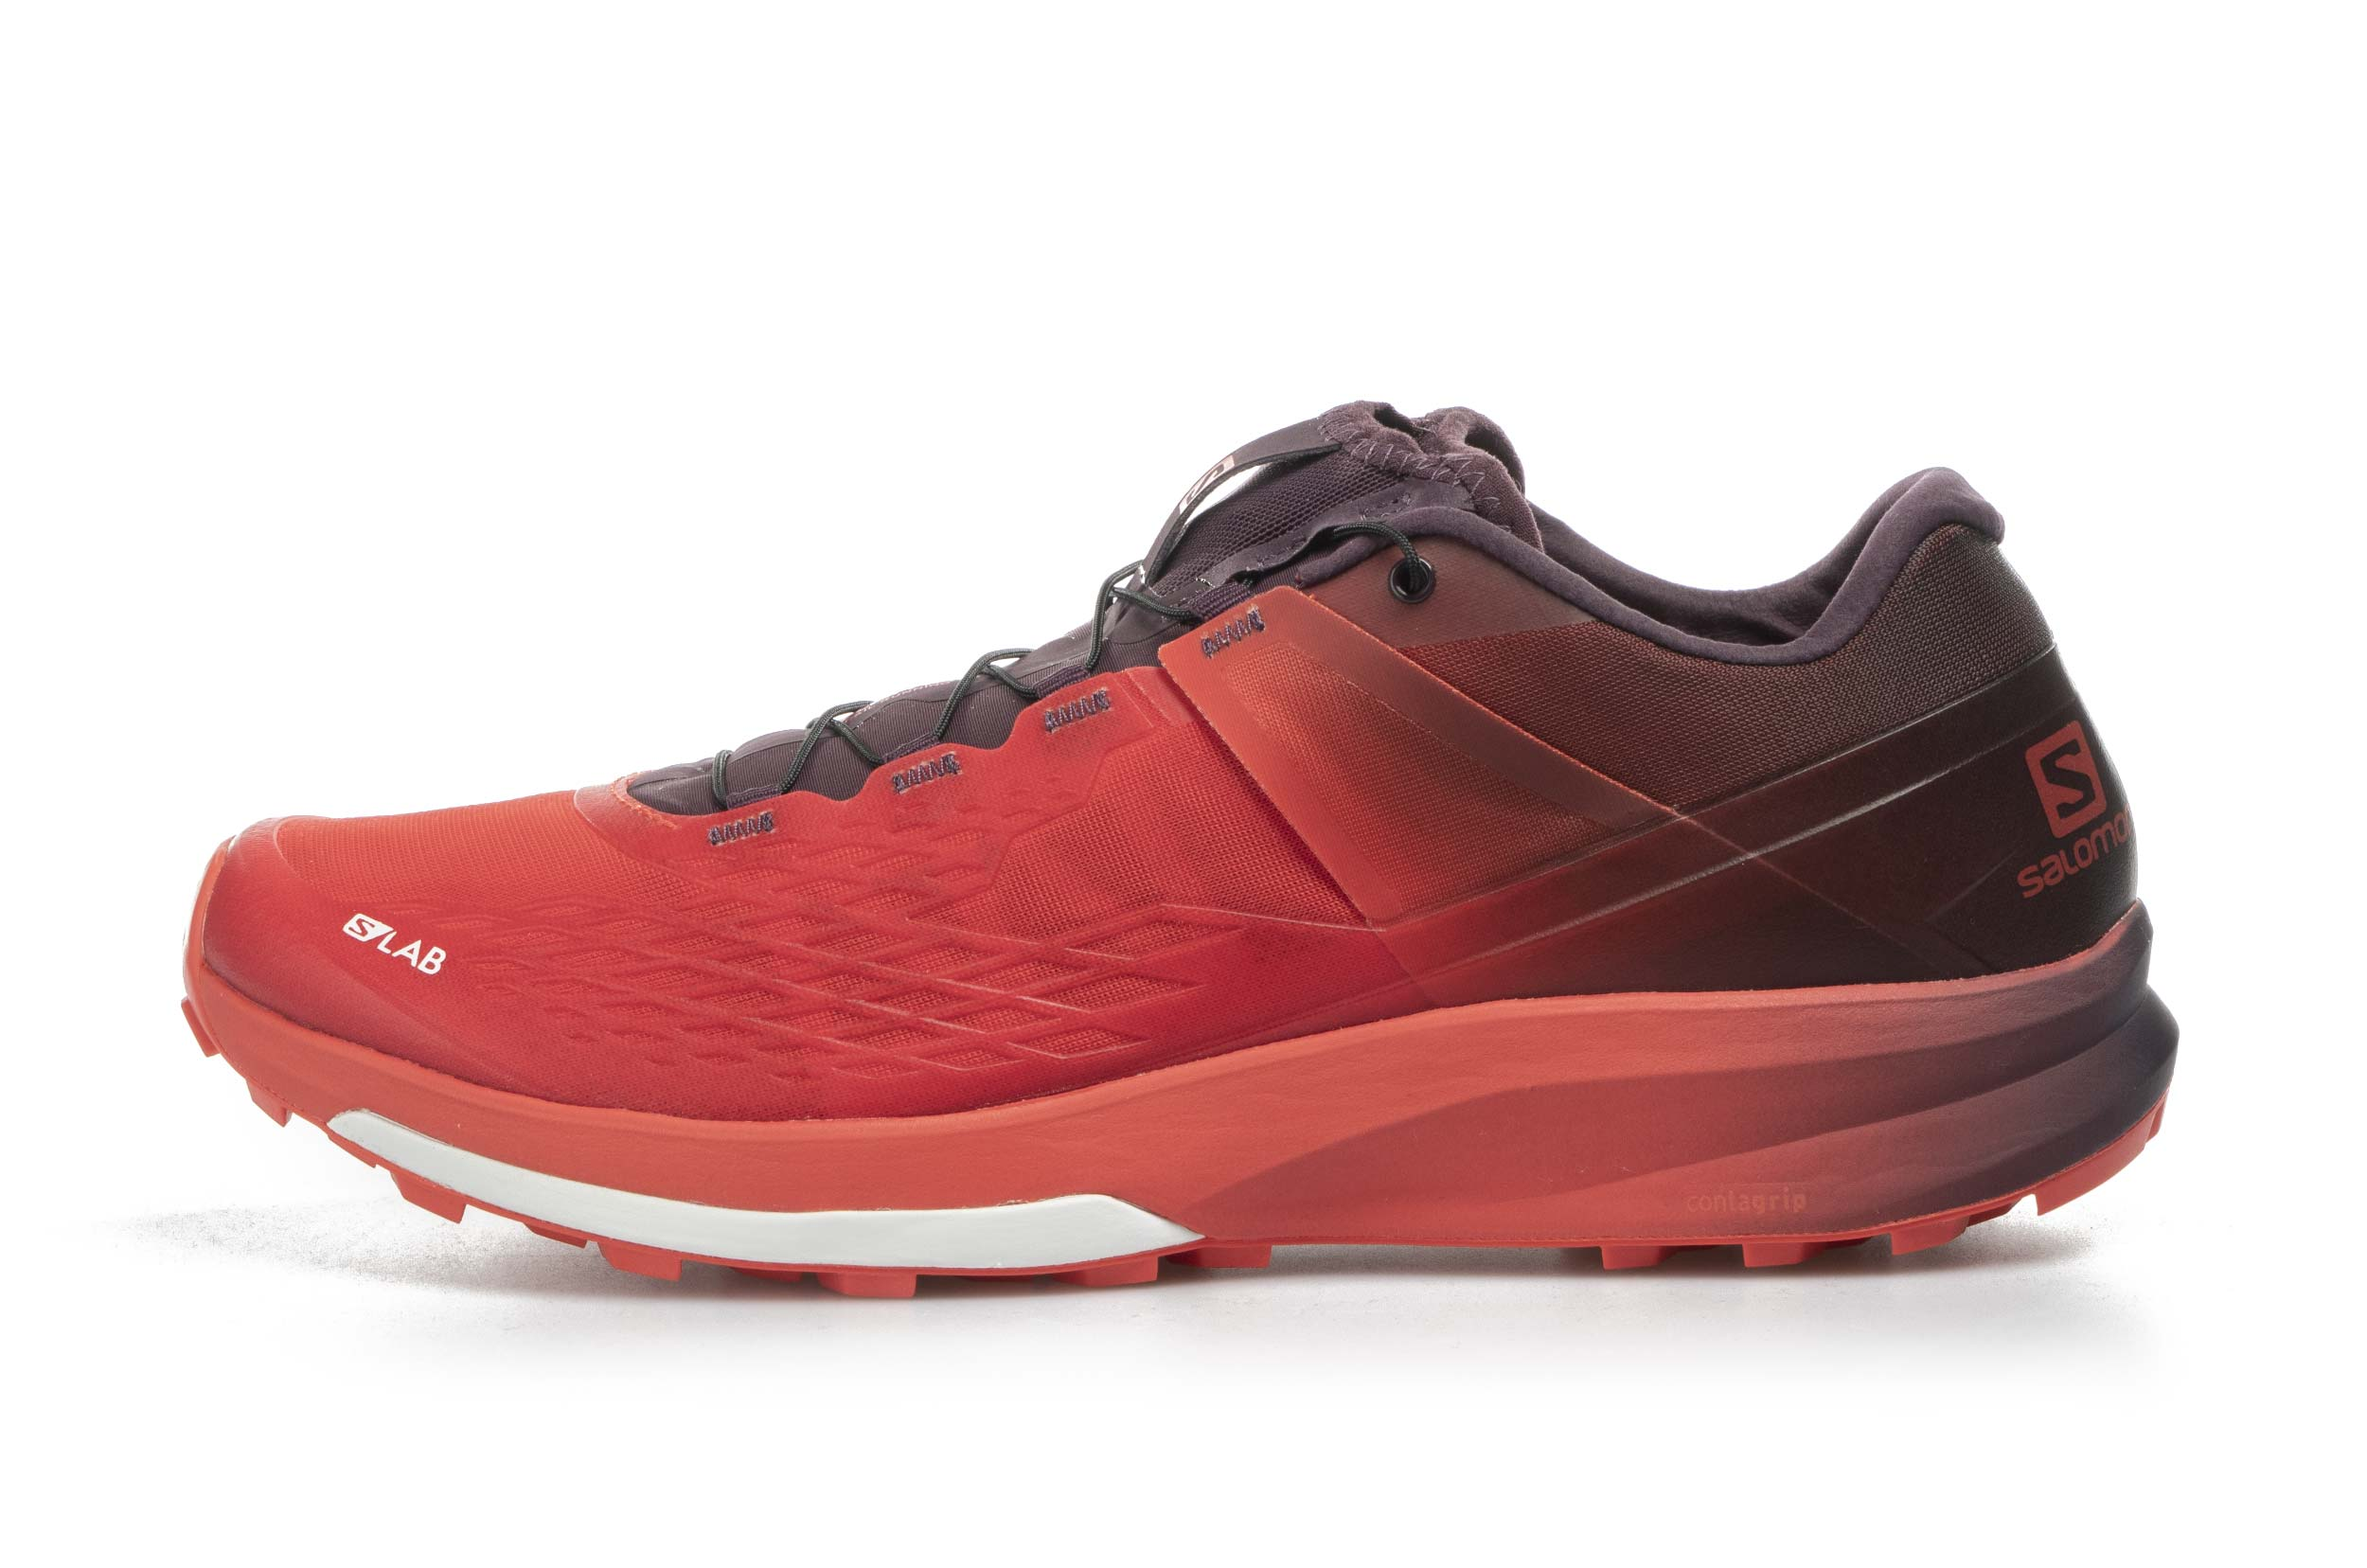 SALOMON UNISEX ENDURANCE S-LAB ULTRA 2 L409272-RD/MAVERICK Κόκκινο